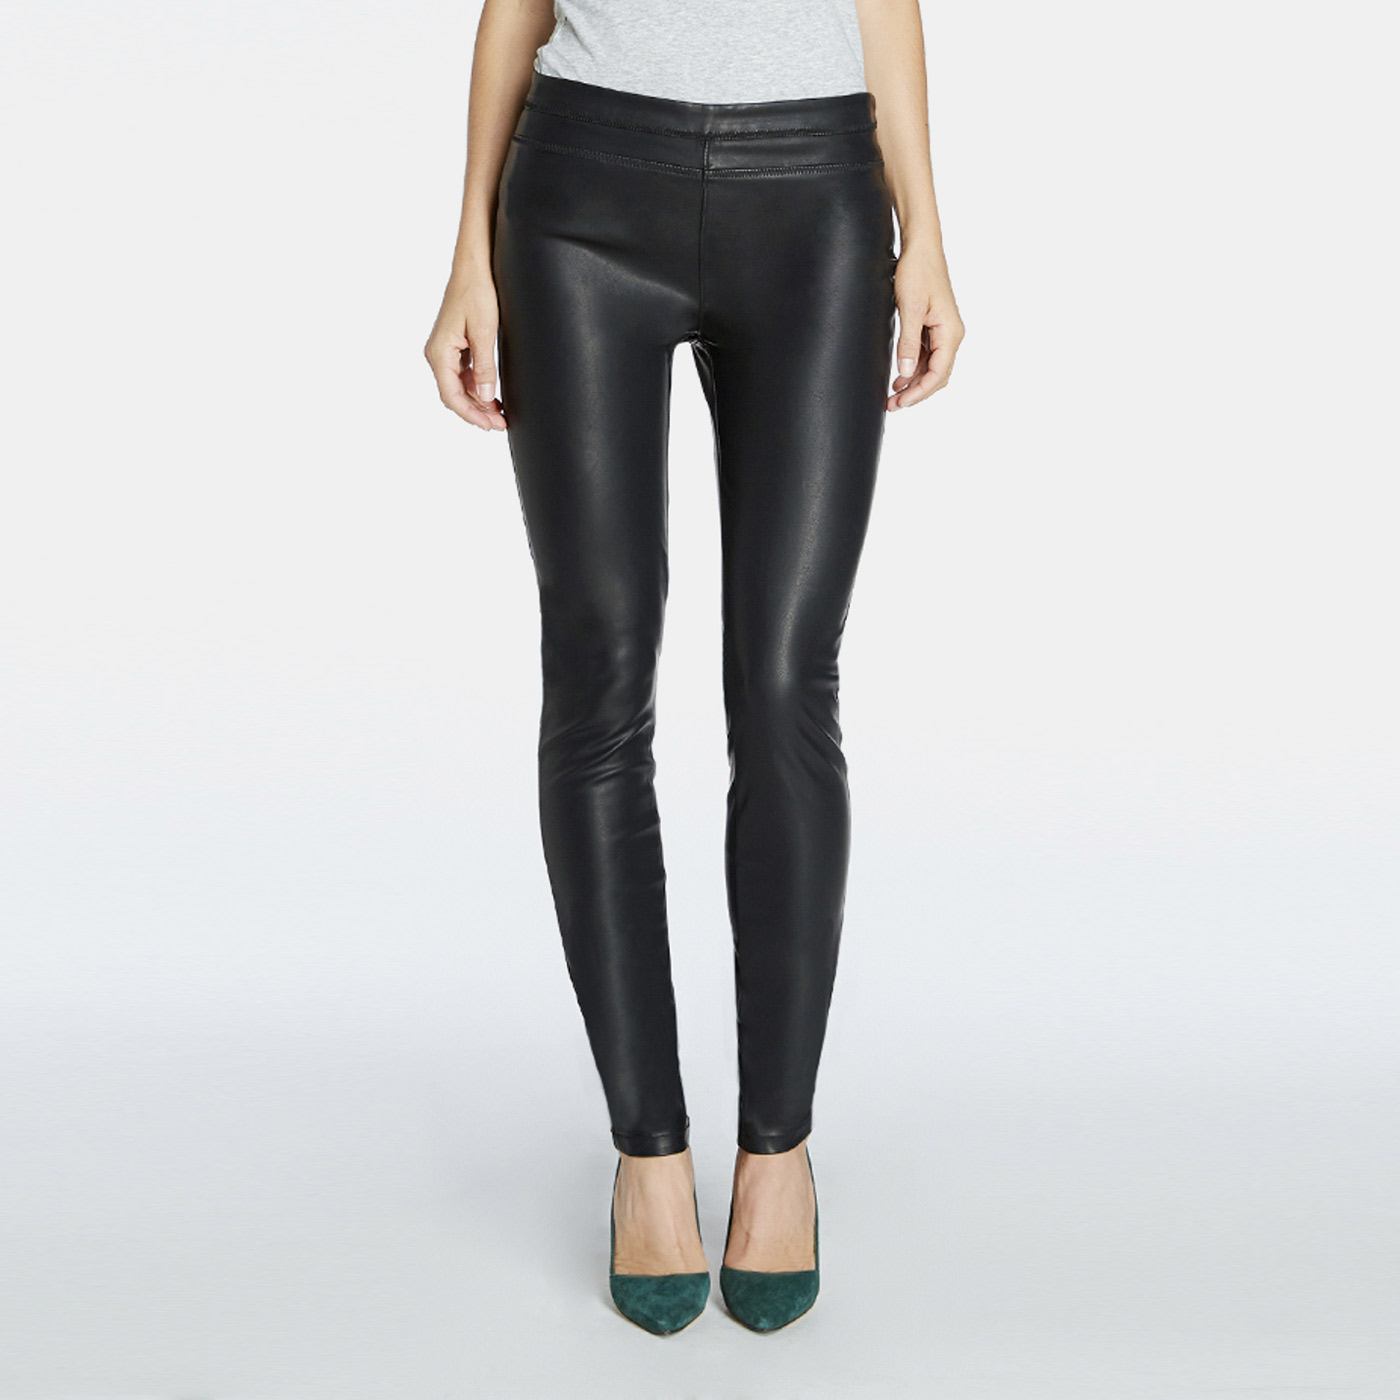 73a26b117f25d BlankNYC Faux Leather Legging Womens Apparel at Vickerey